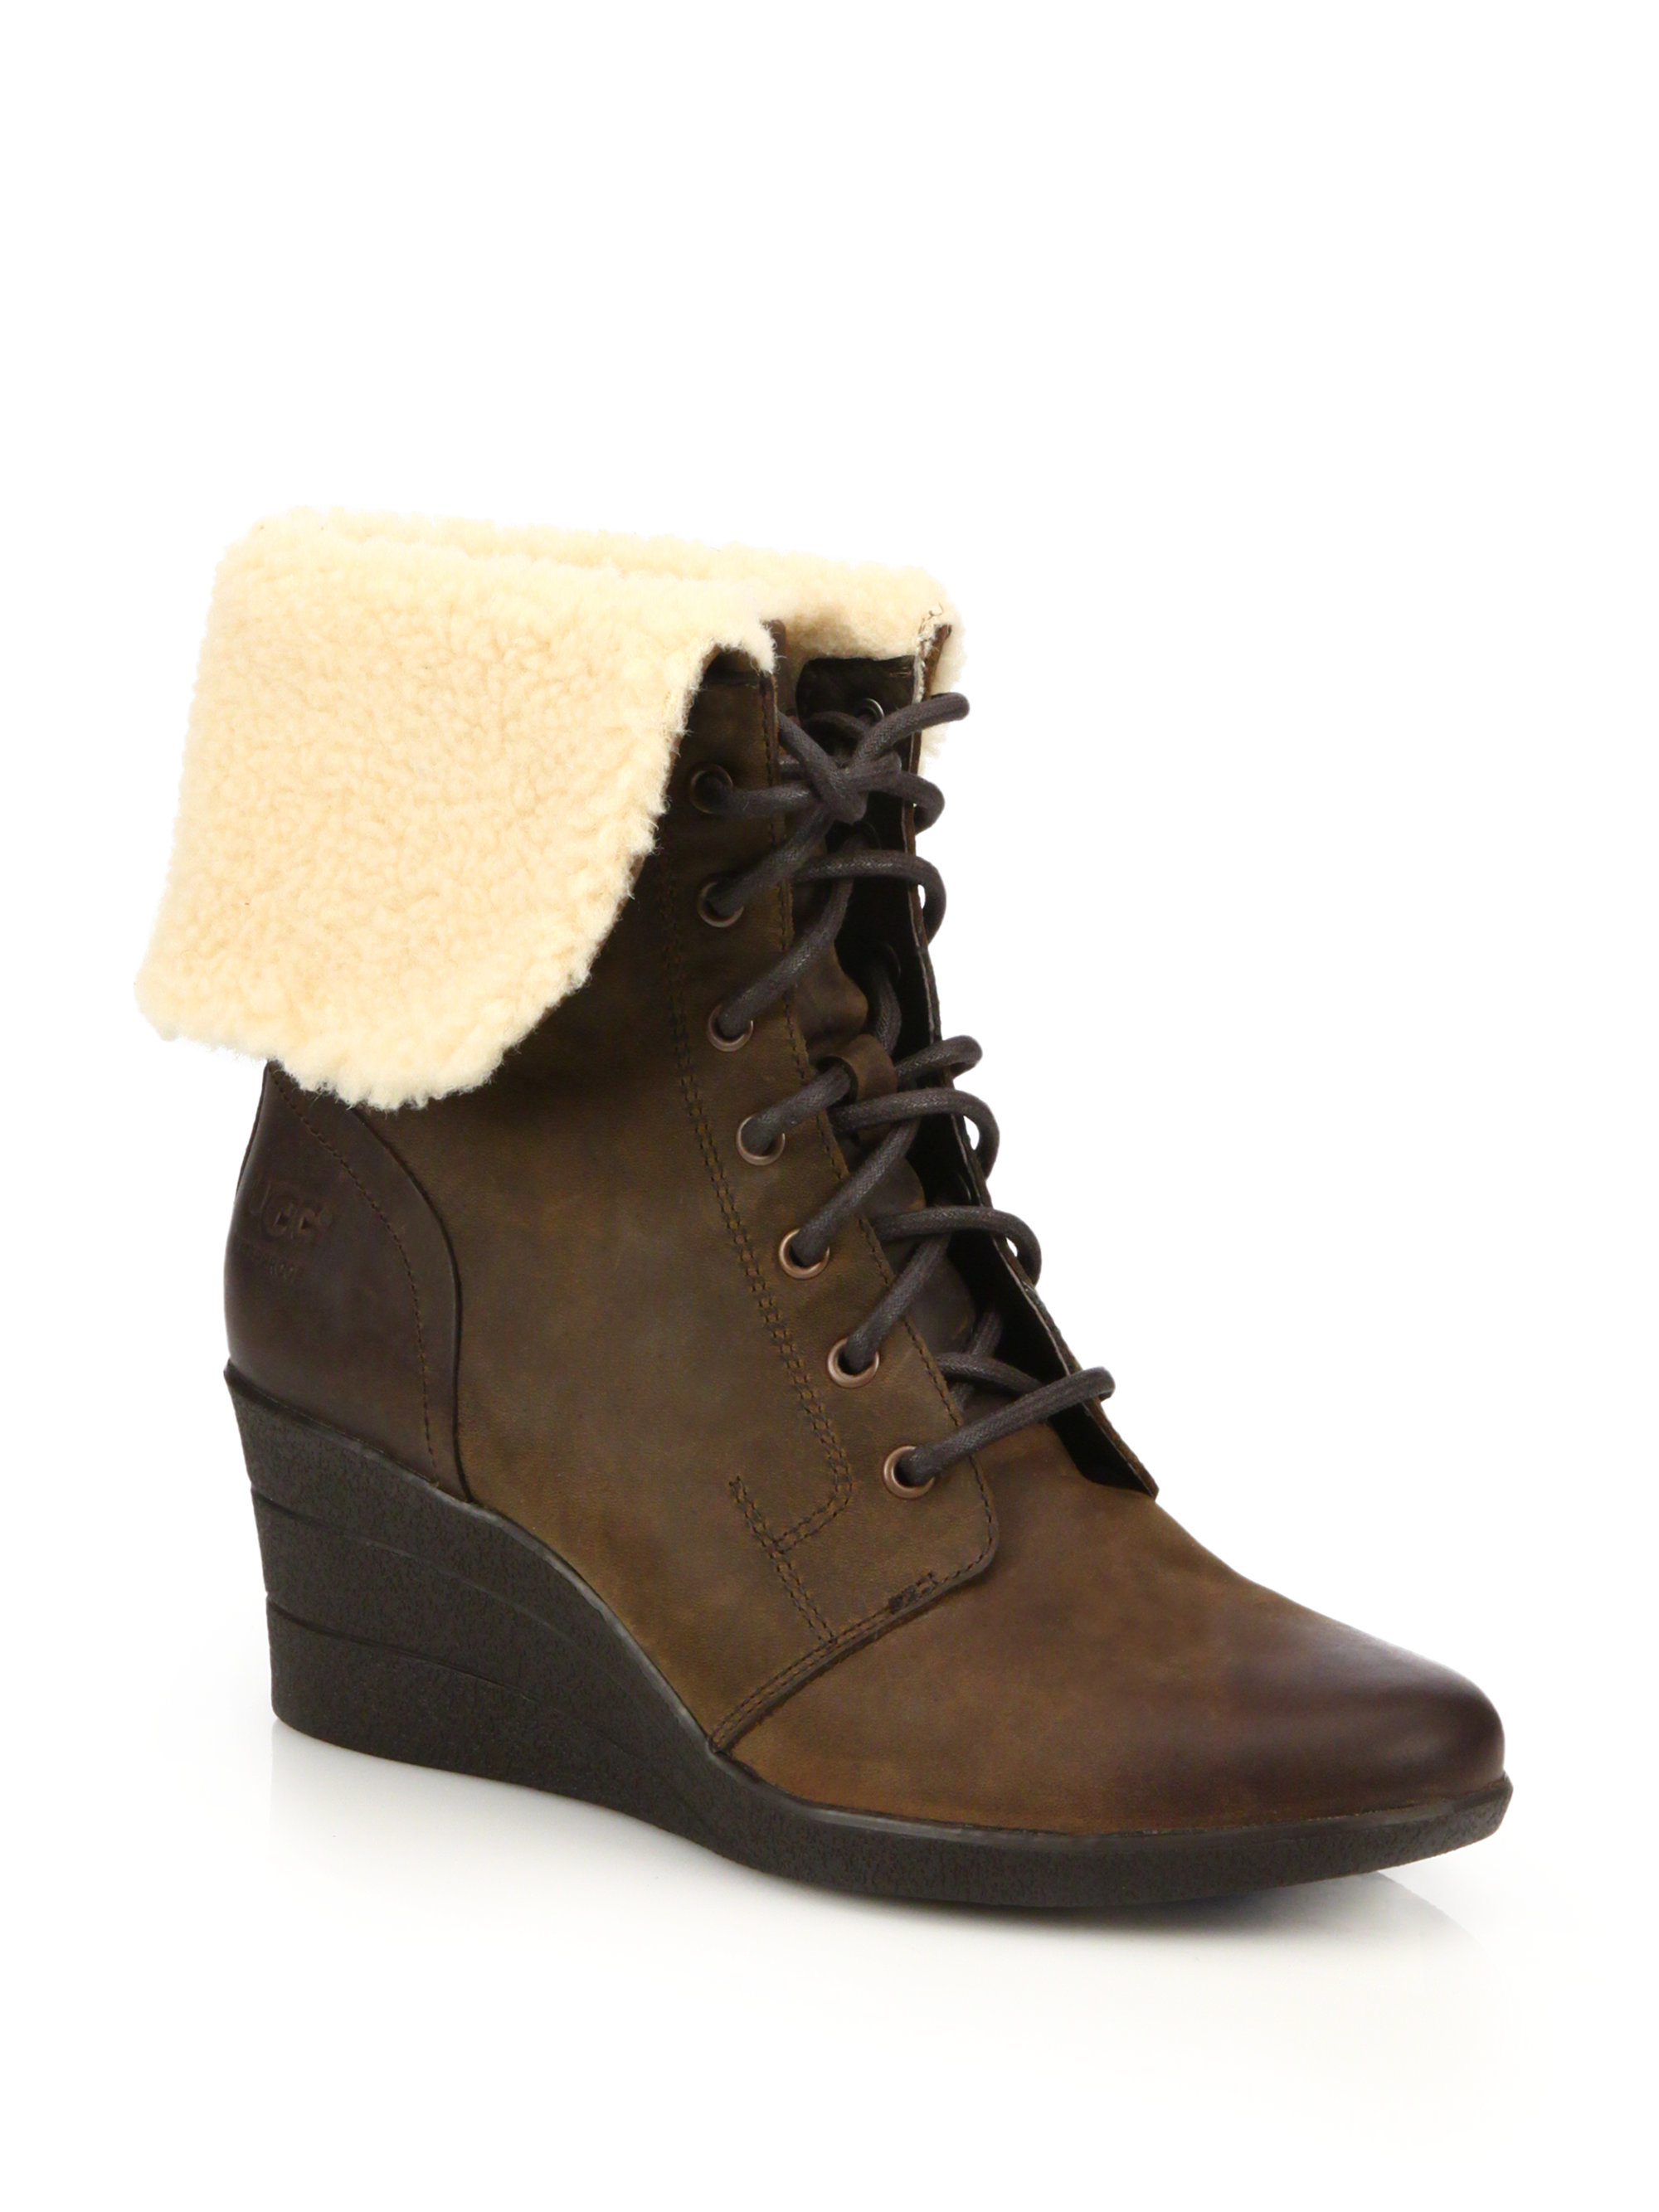 ugg uptown zea leather wedge boots in black lyst